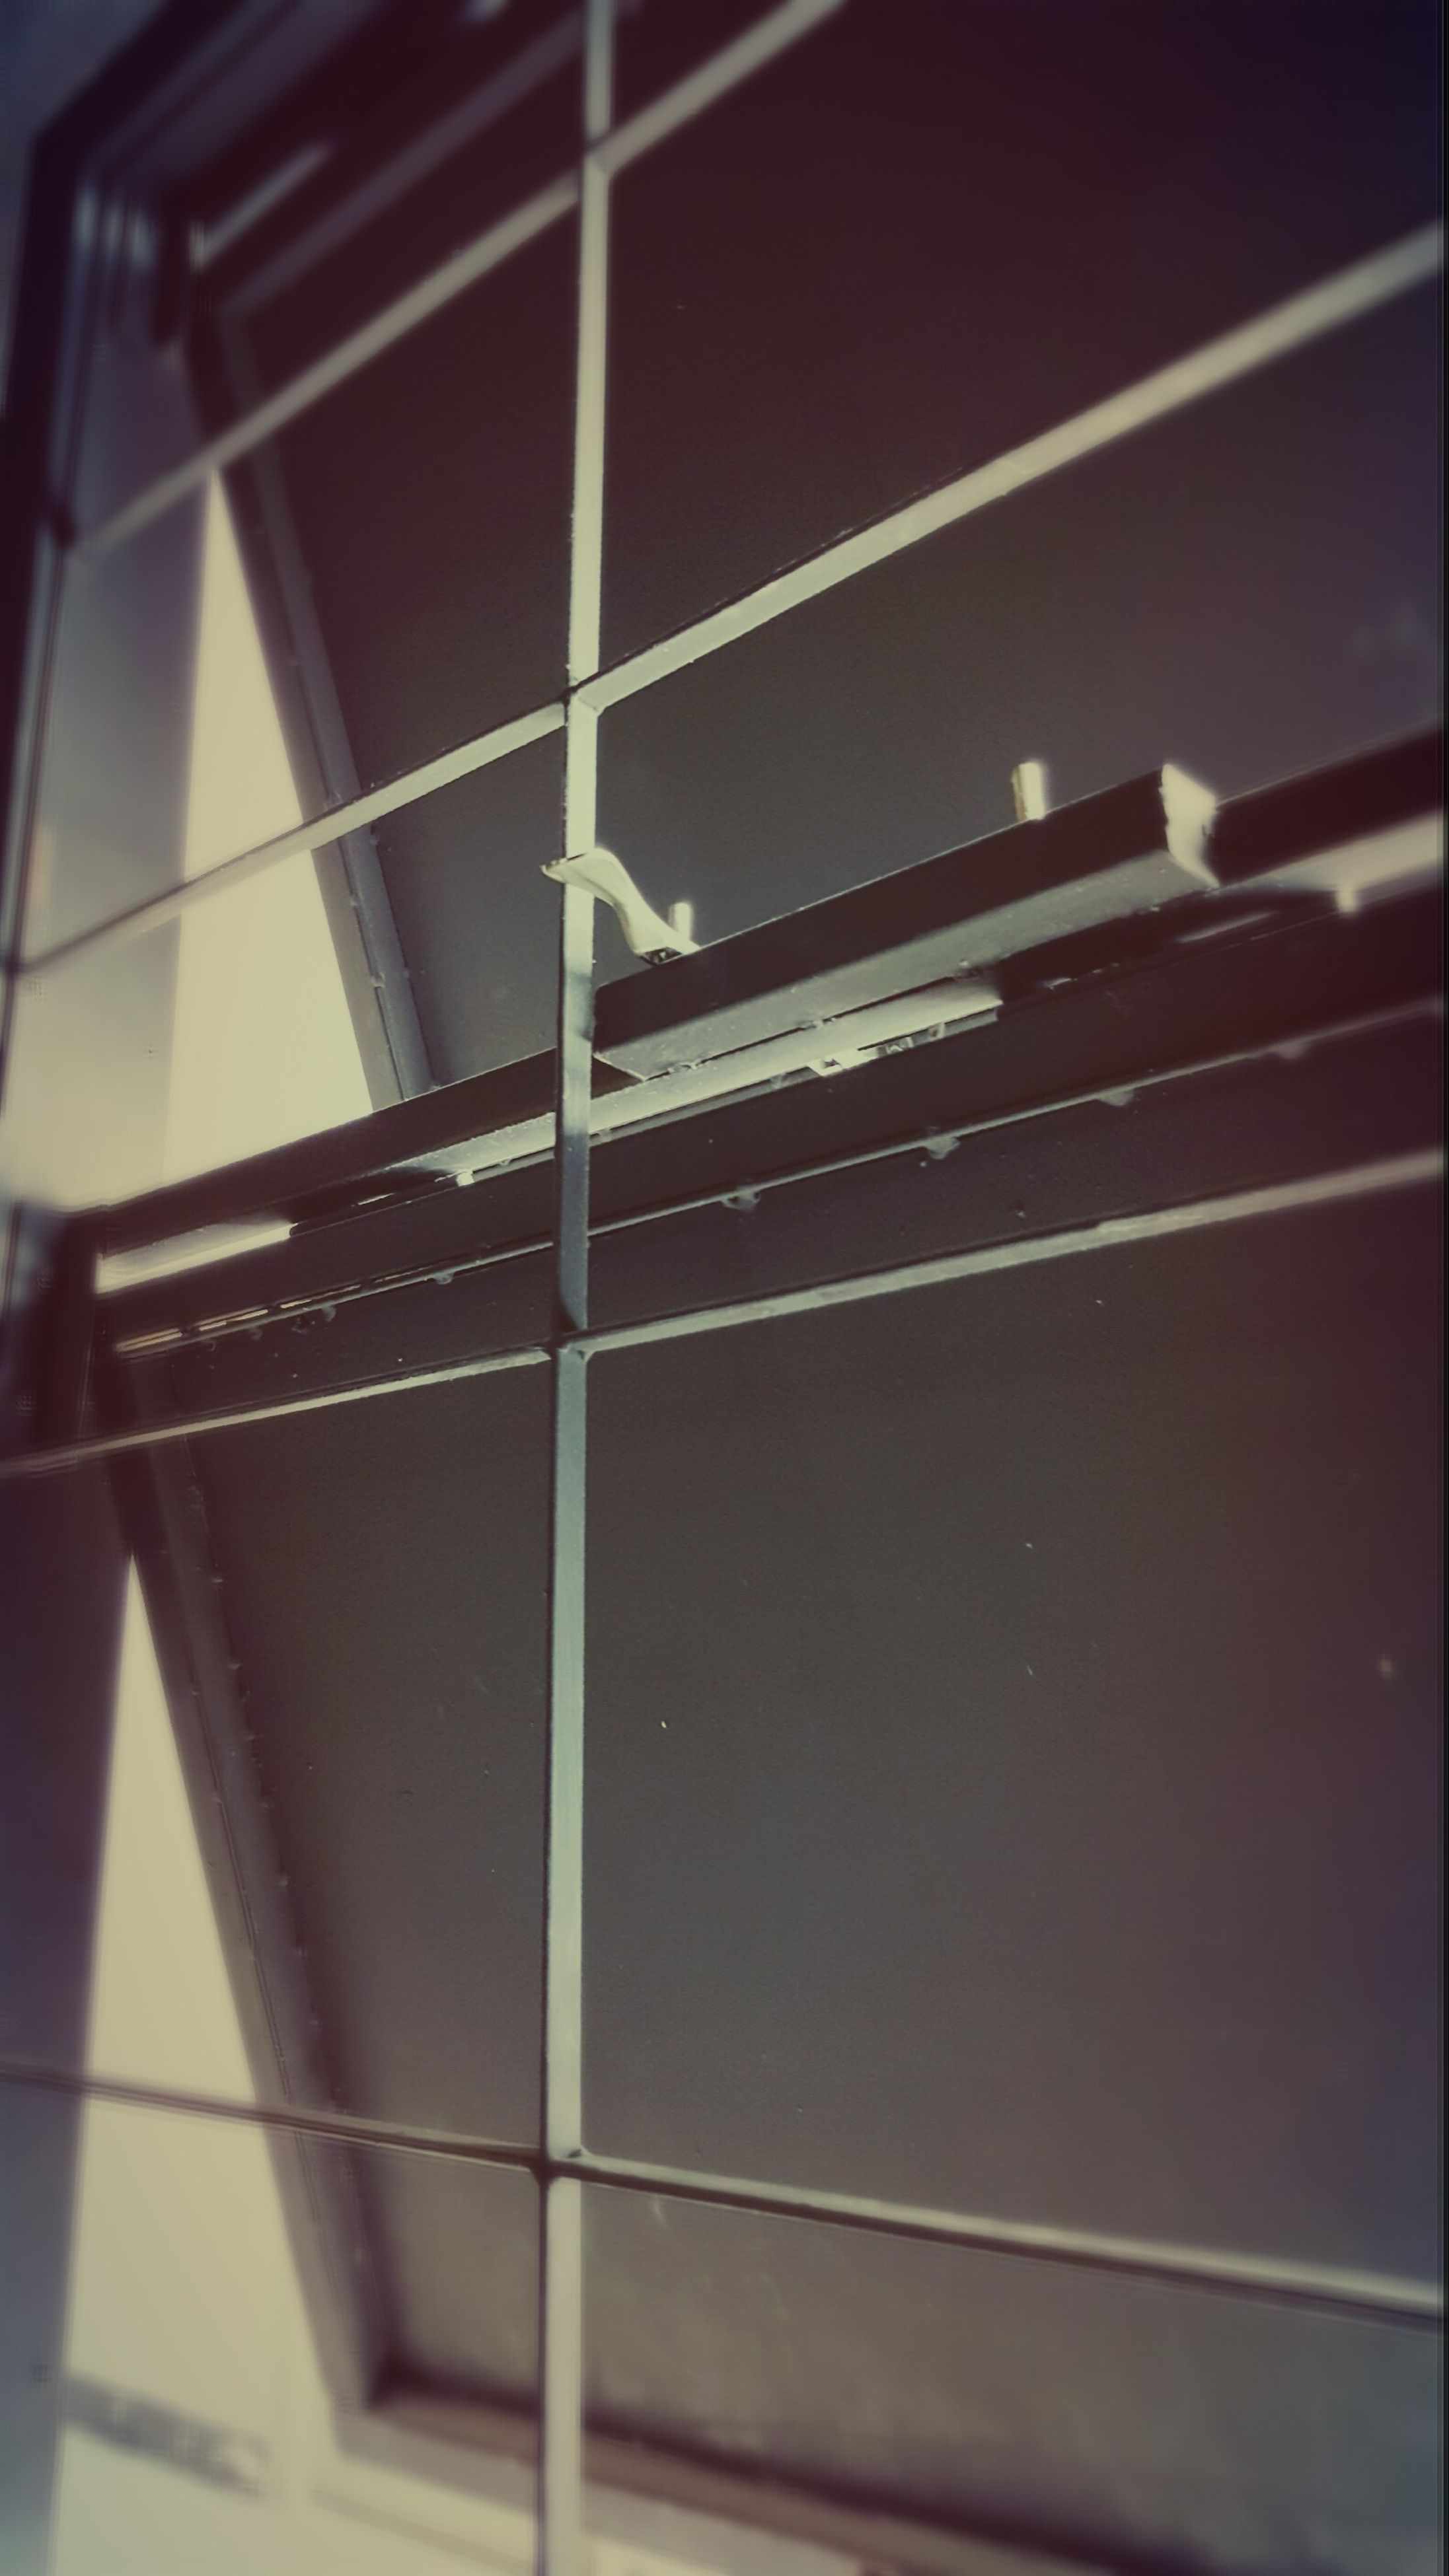 low angle view, architecture, built structure, indoors, building exterior, pattern, building, reflection, railing, window, modern, wall - building feature, no people, geometric shape, metal, glass - material, day, steps, wall, ceiling